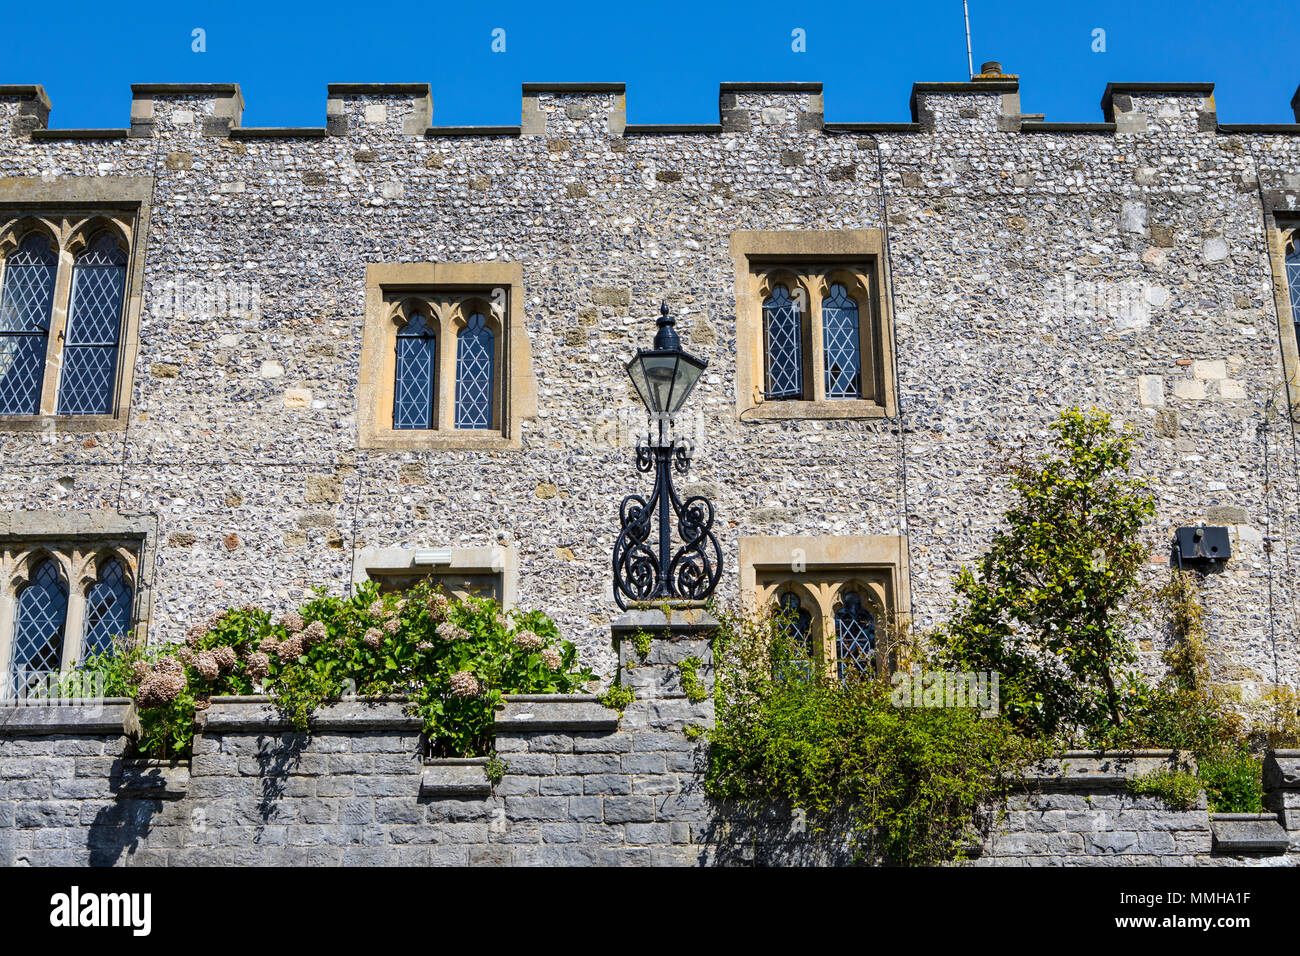 A view of the medieval exterior of St. Wilfrids Priory in the market town of Arundel in West Sussex, UK. - Stock Image